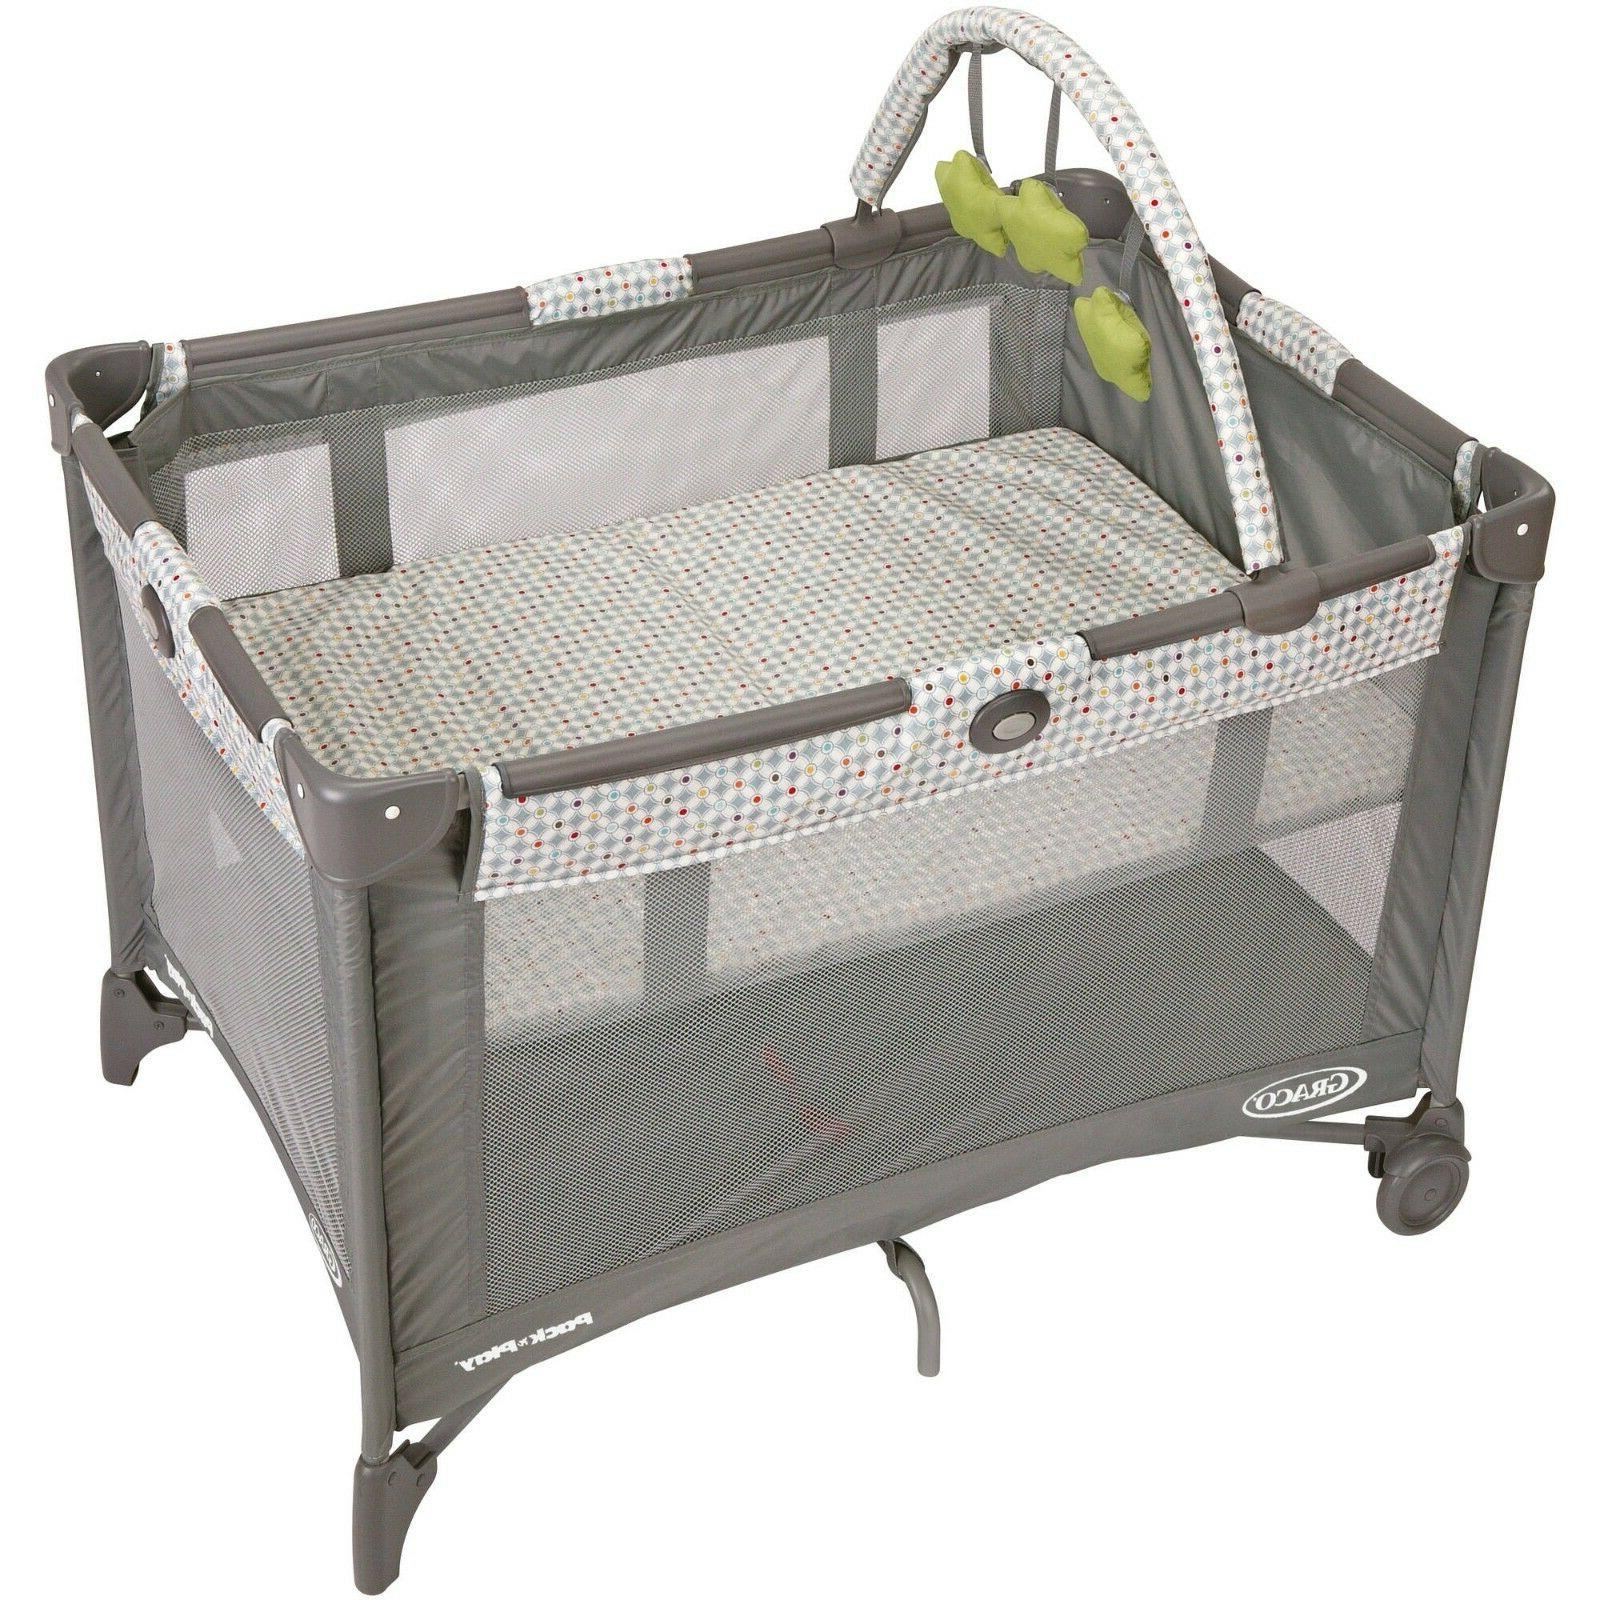 Graco Play On Go with Bassinet